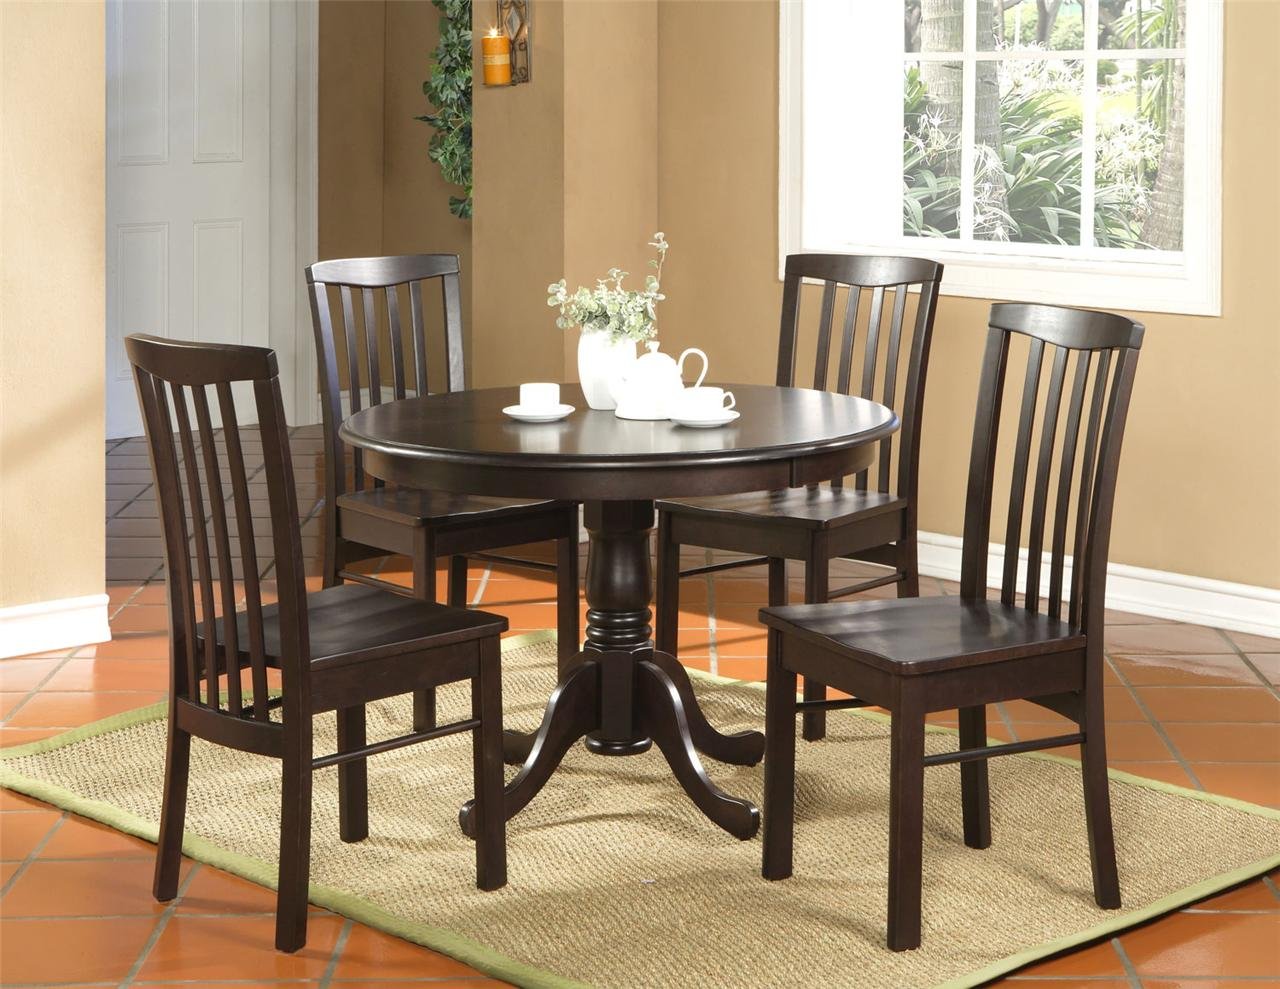 5pc round kitchen dinette set table and 4 chairs walnut ebay for Small kitchen tables and chairs for small spaces